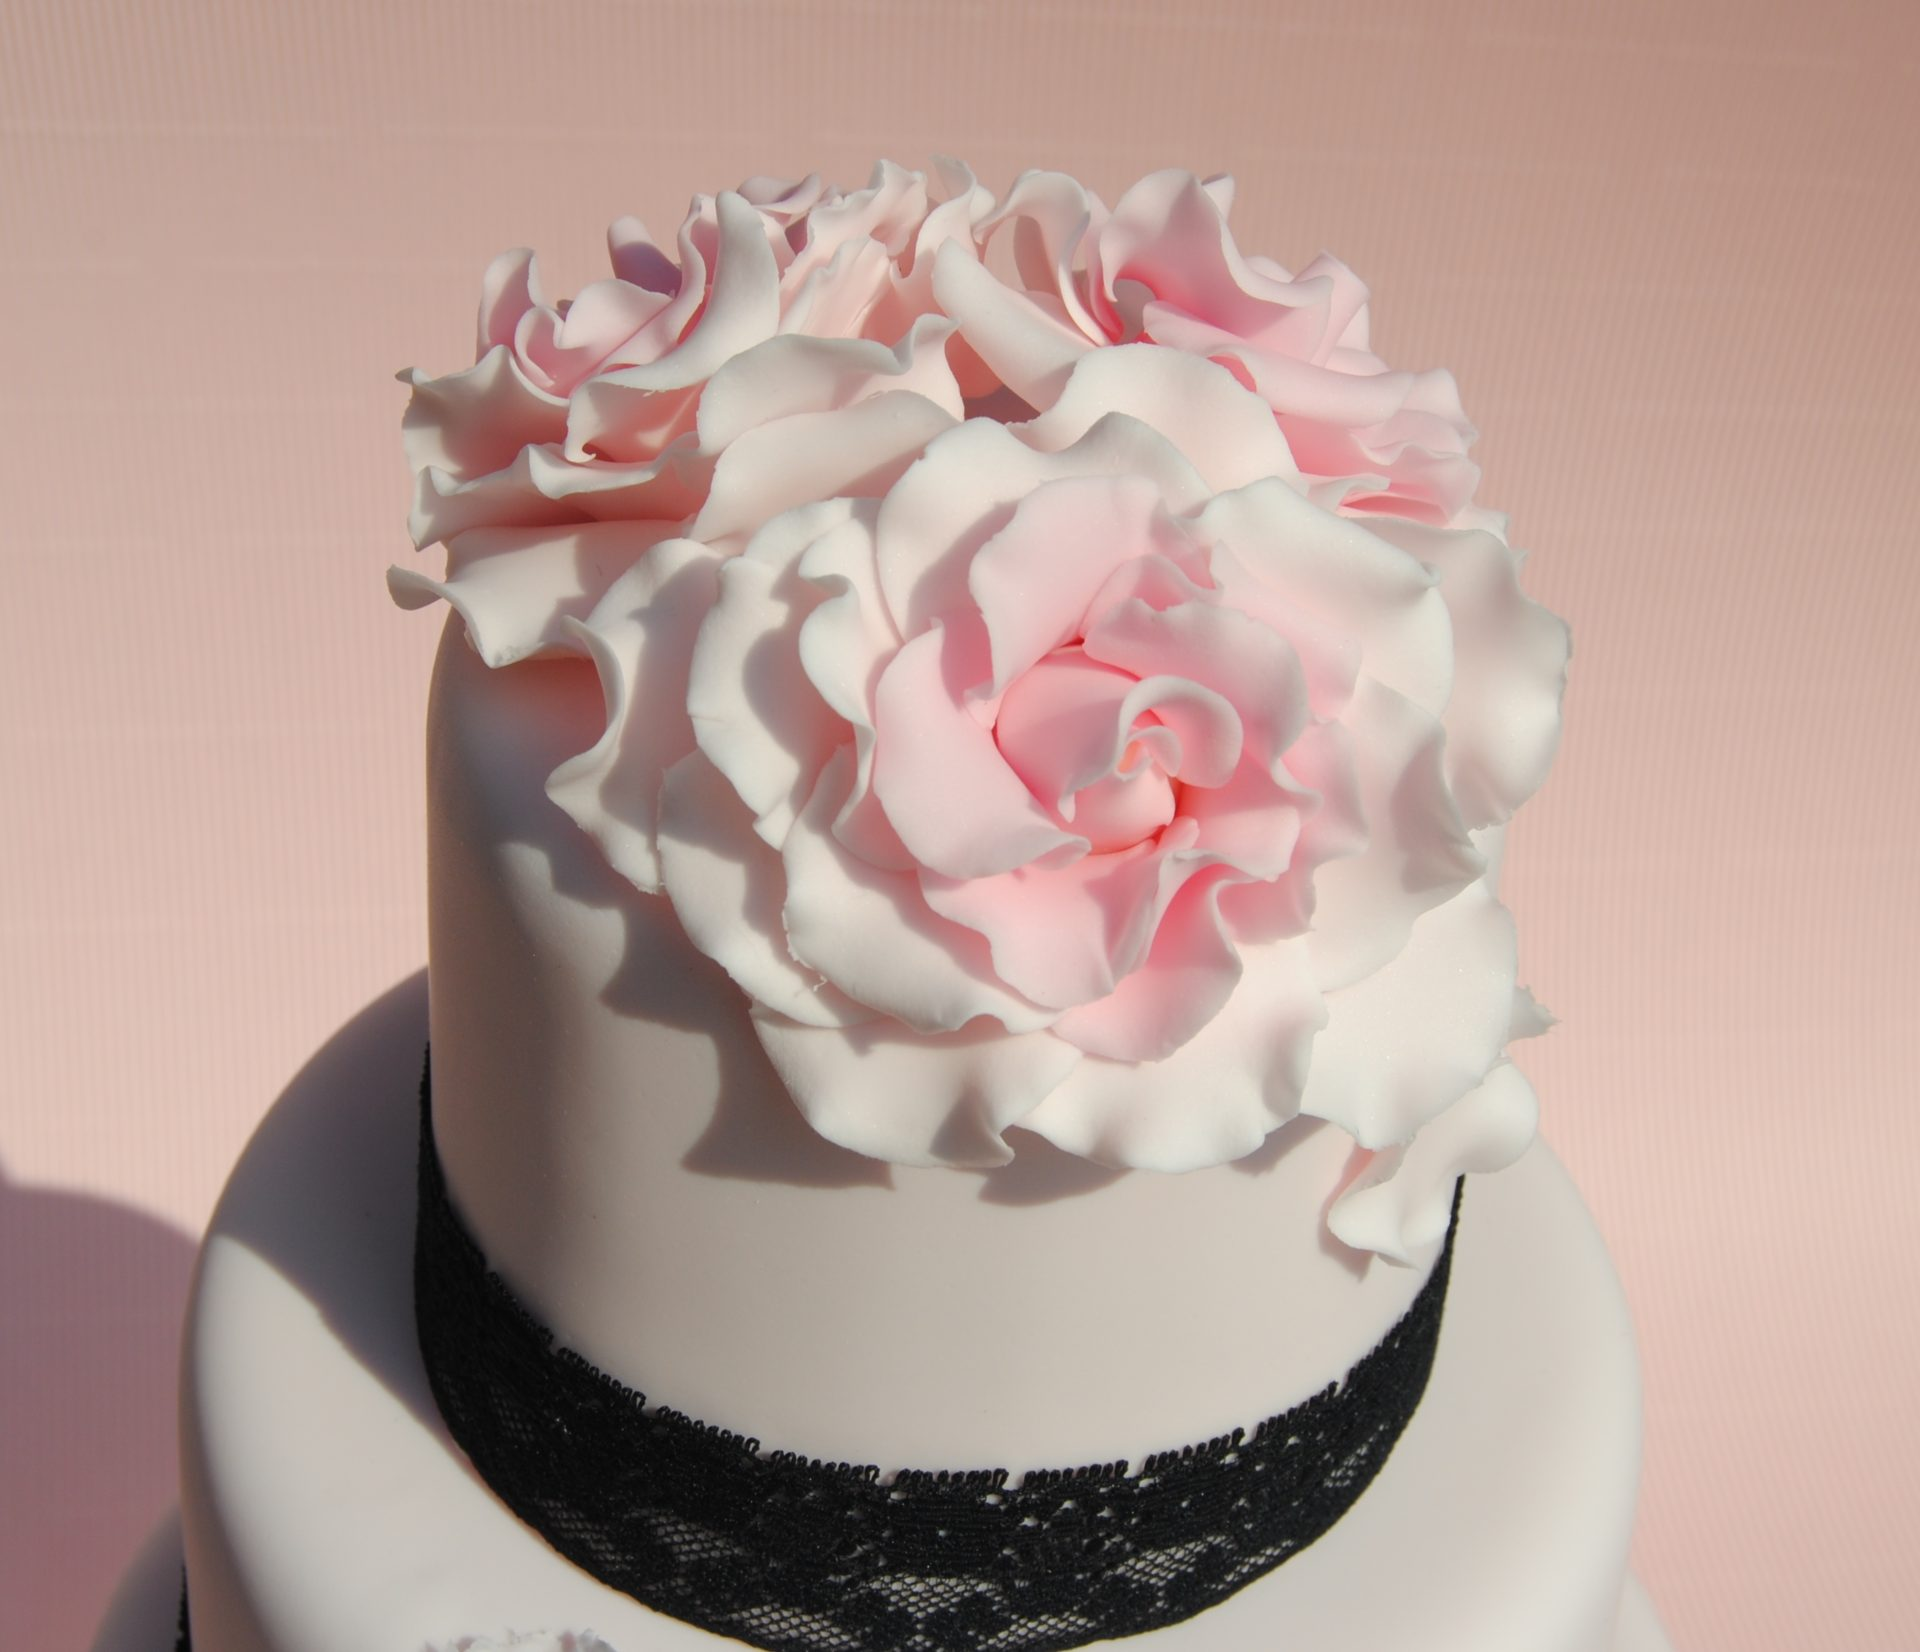 cake-mericakes-barcelona-rose-weddingcake-black-encaje-rosas-flowers-sugarcraft-sugarpaste